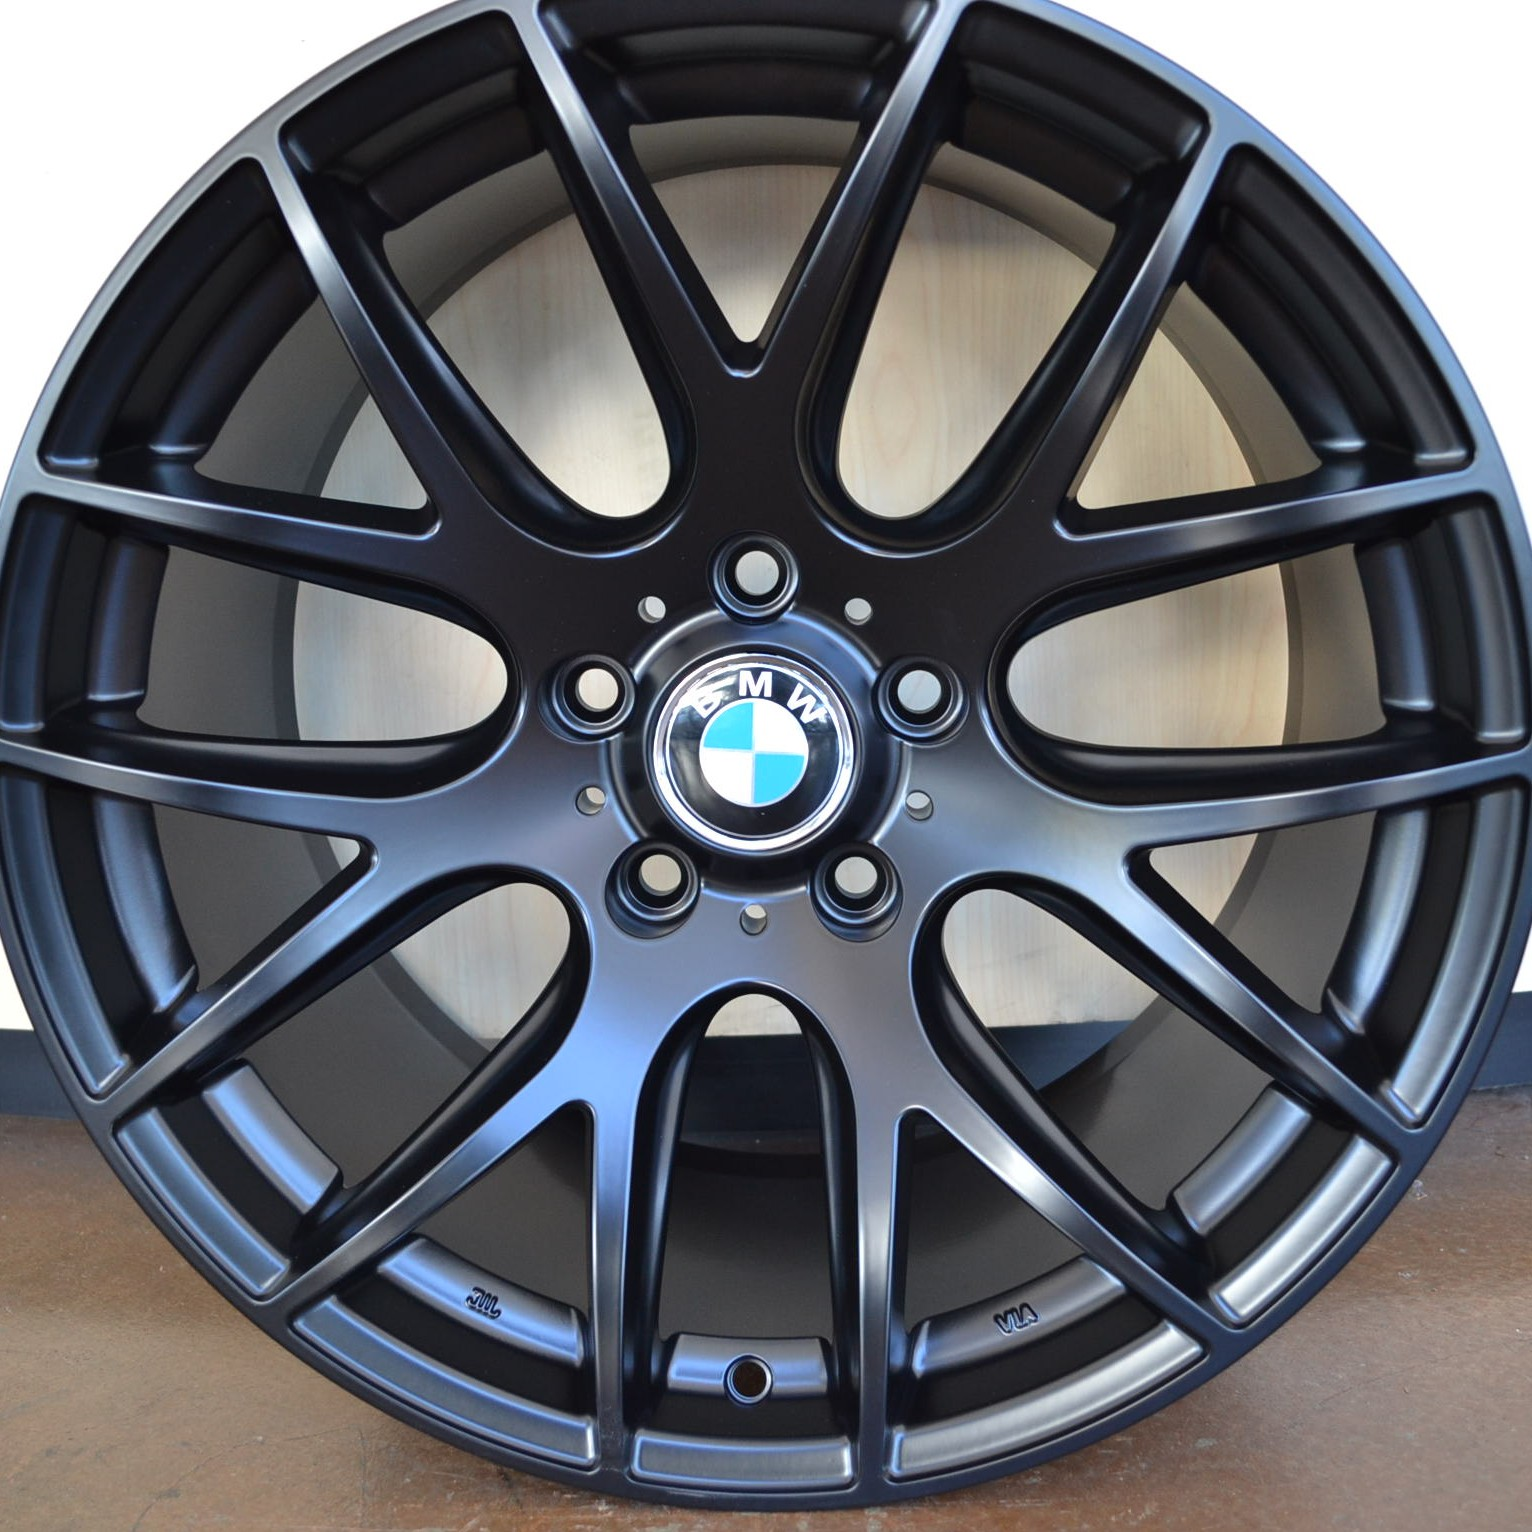 Bmw Wheels Rim 525i 528i 530i 535i 545i 550i Matte Black 19 Quot